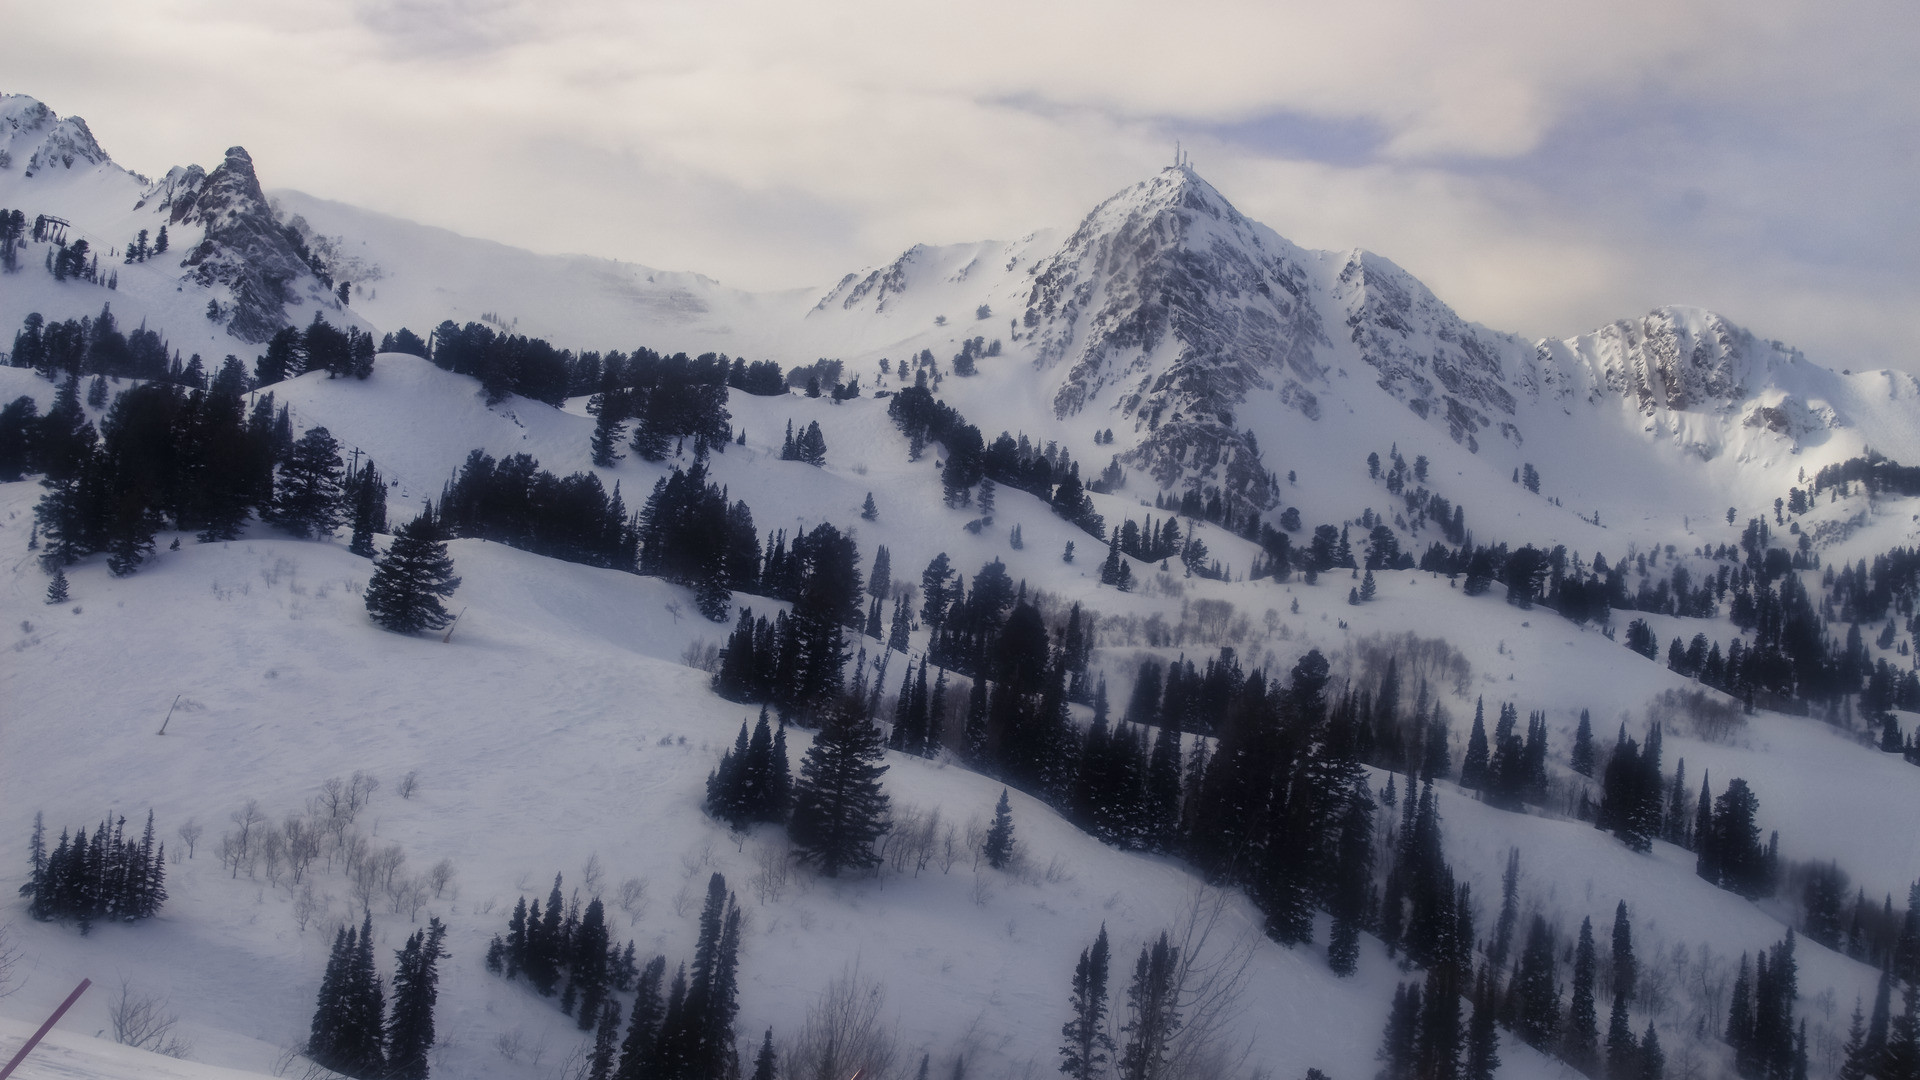 View from Snowbasin Resort this afternoon. Mostly cloudy with the sun peaking through. Courtesy: snowbasin.com